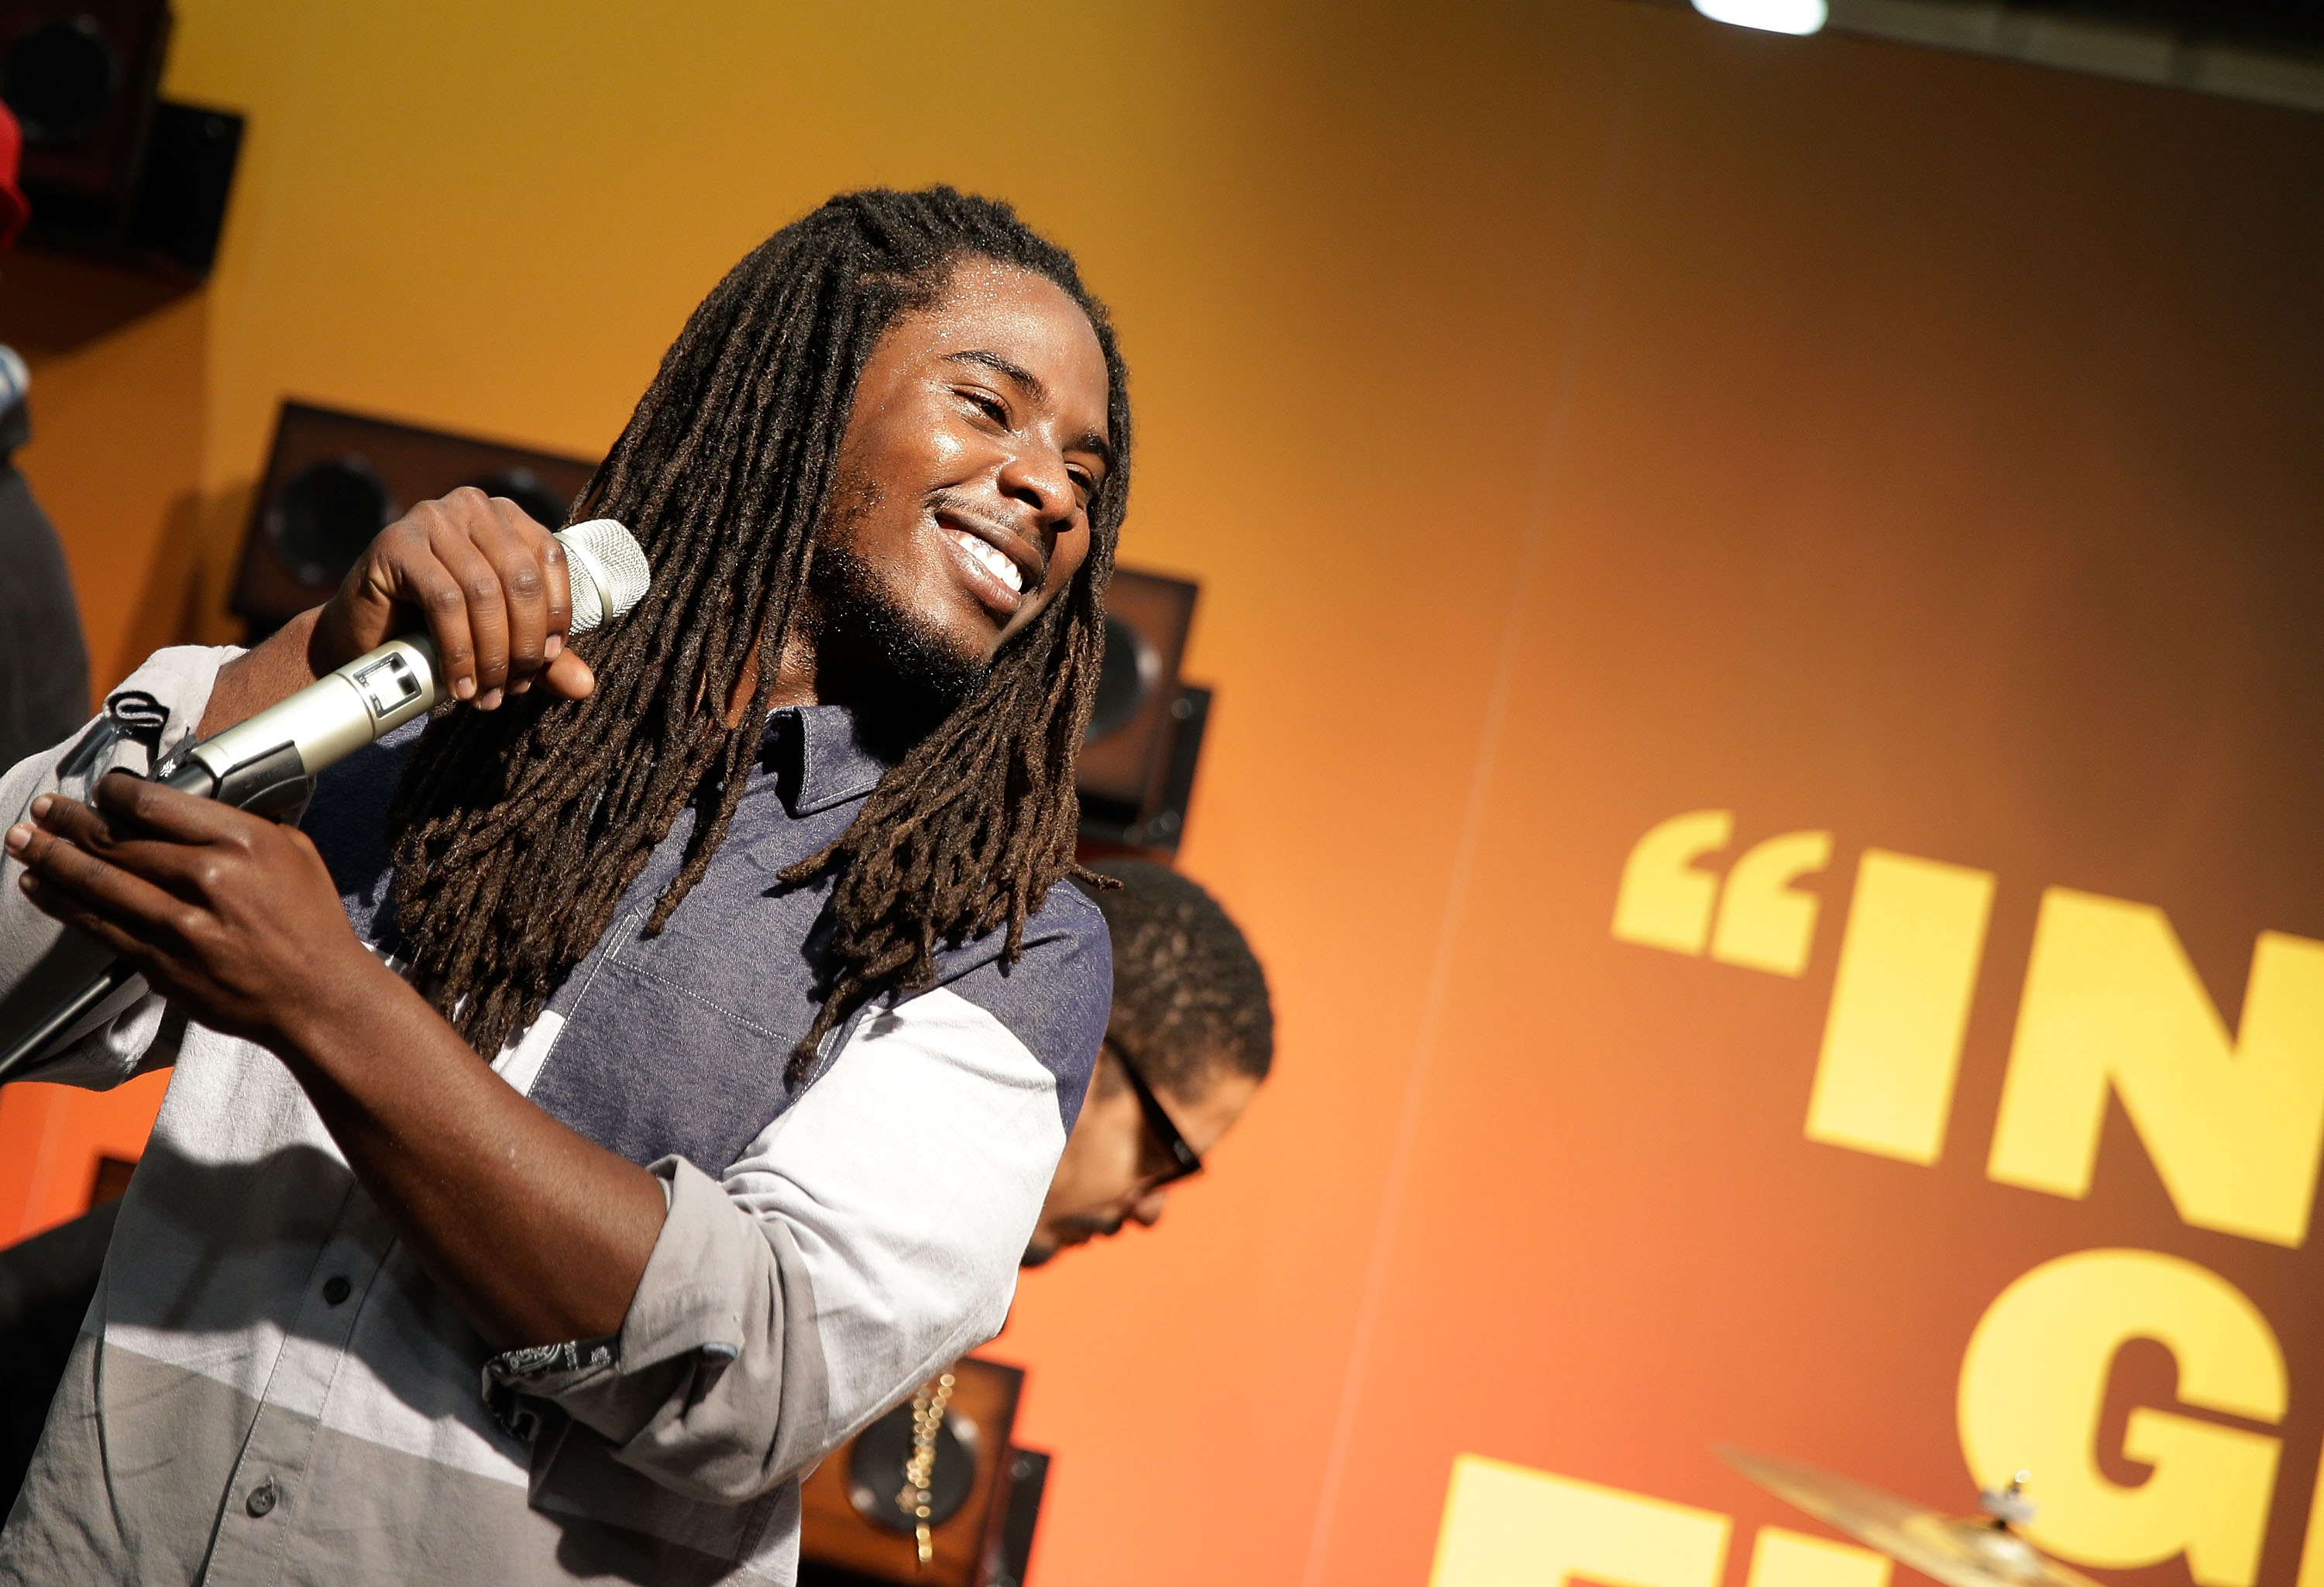 Daniel Bambaata Marley, son of Ziggy Marley and leader of the rising third-generation of Marley artists, opens up the performance series on Tuesday.